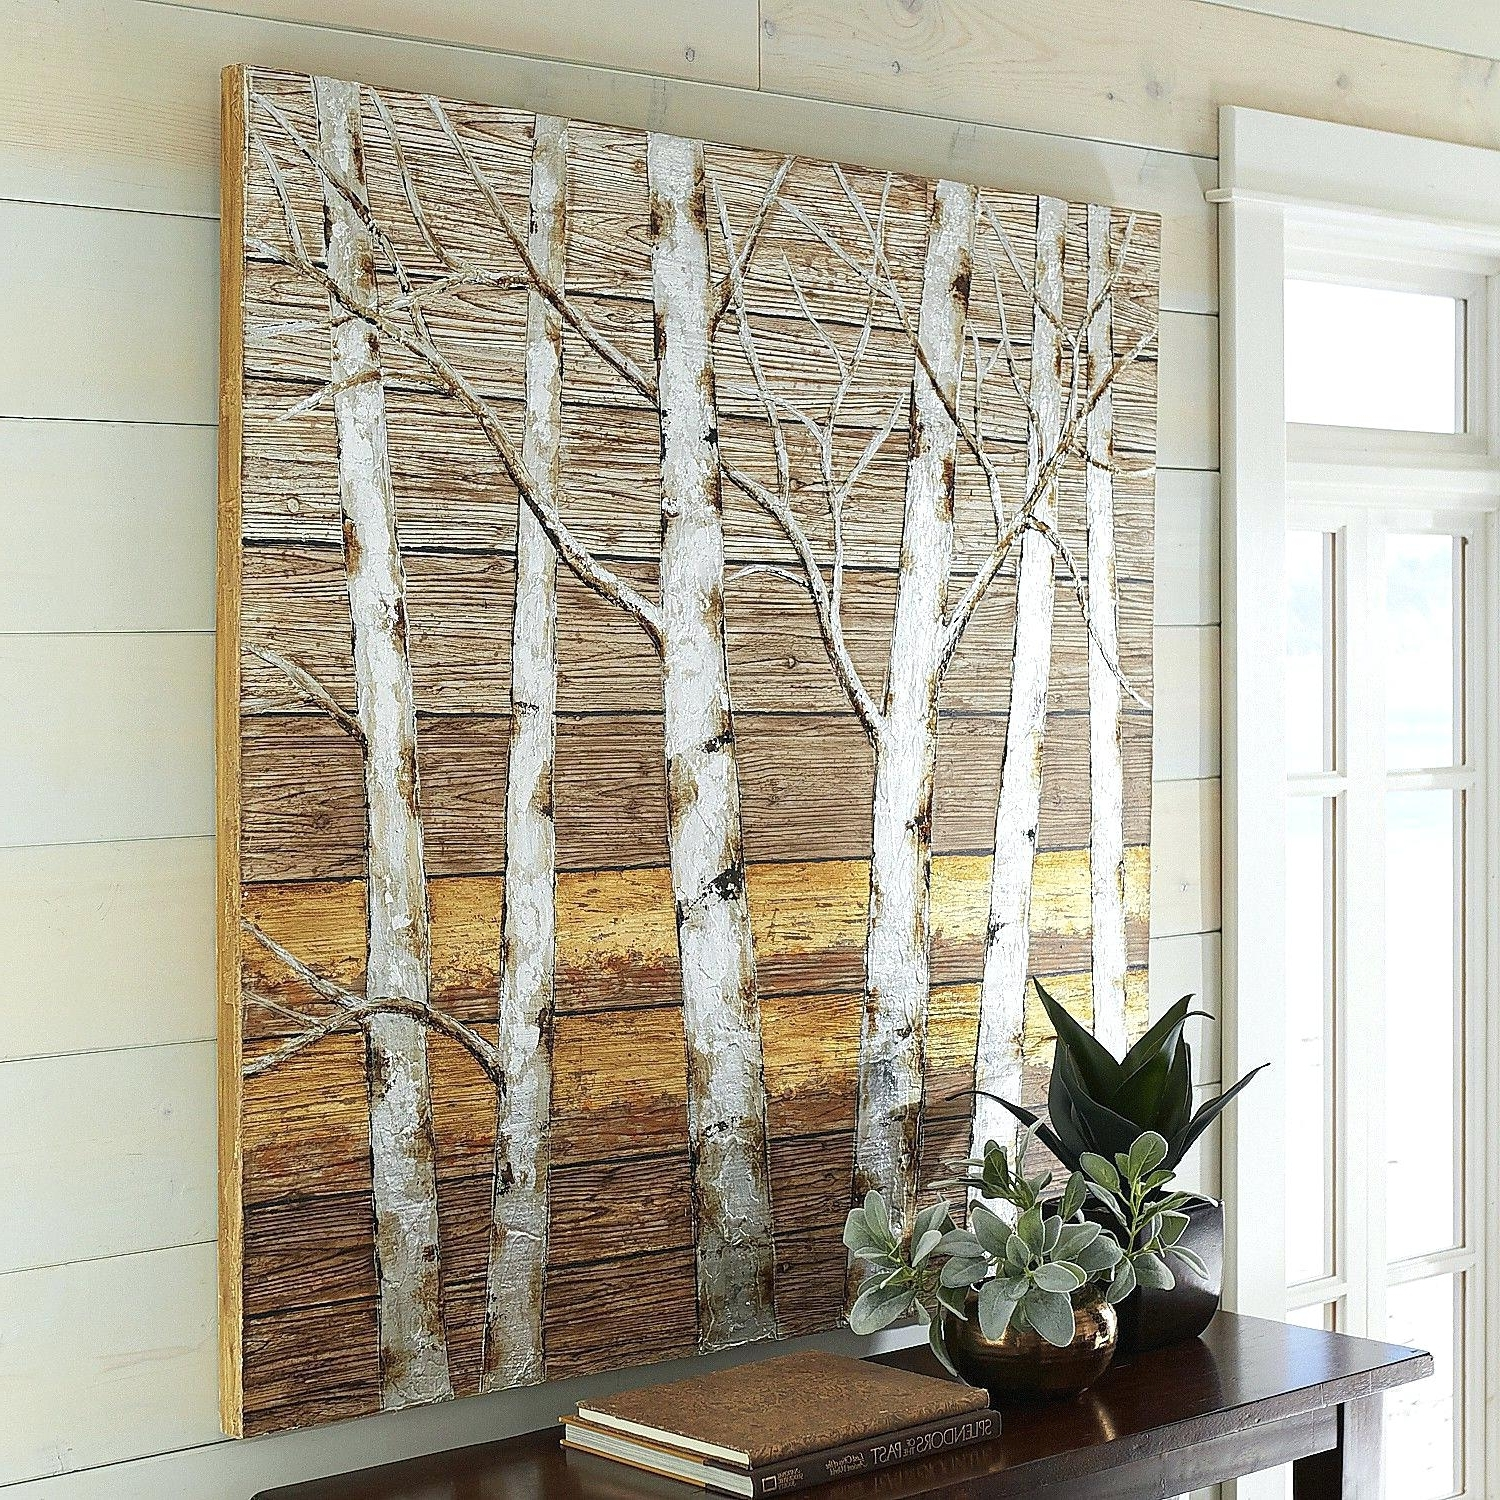 Pier 1 Wall Art With Regard To Most Up To Date Metallic Birch Trees Wall Art Pier 1 Imports One Decor (View 17 of 20)